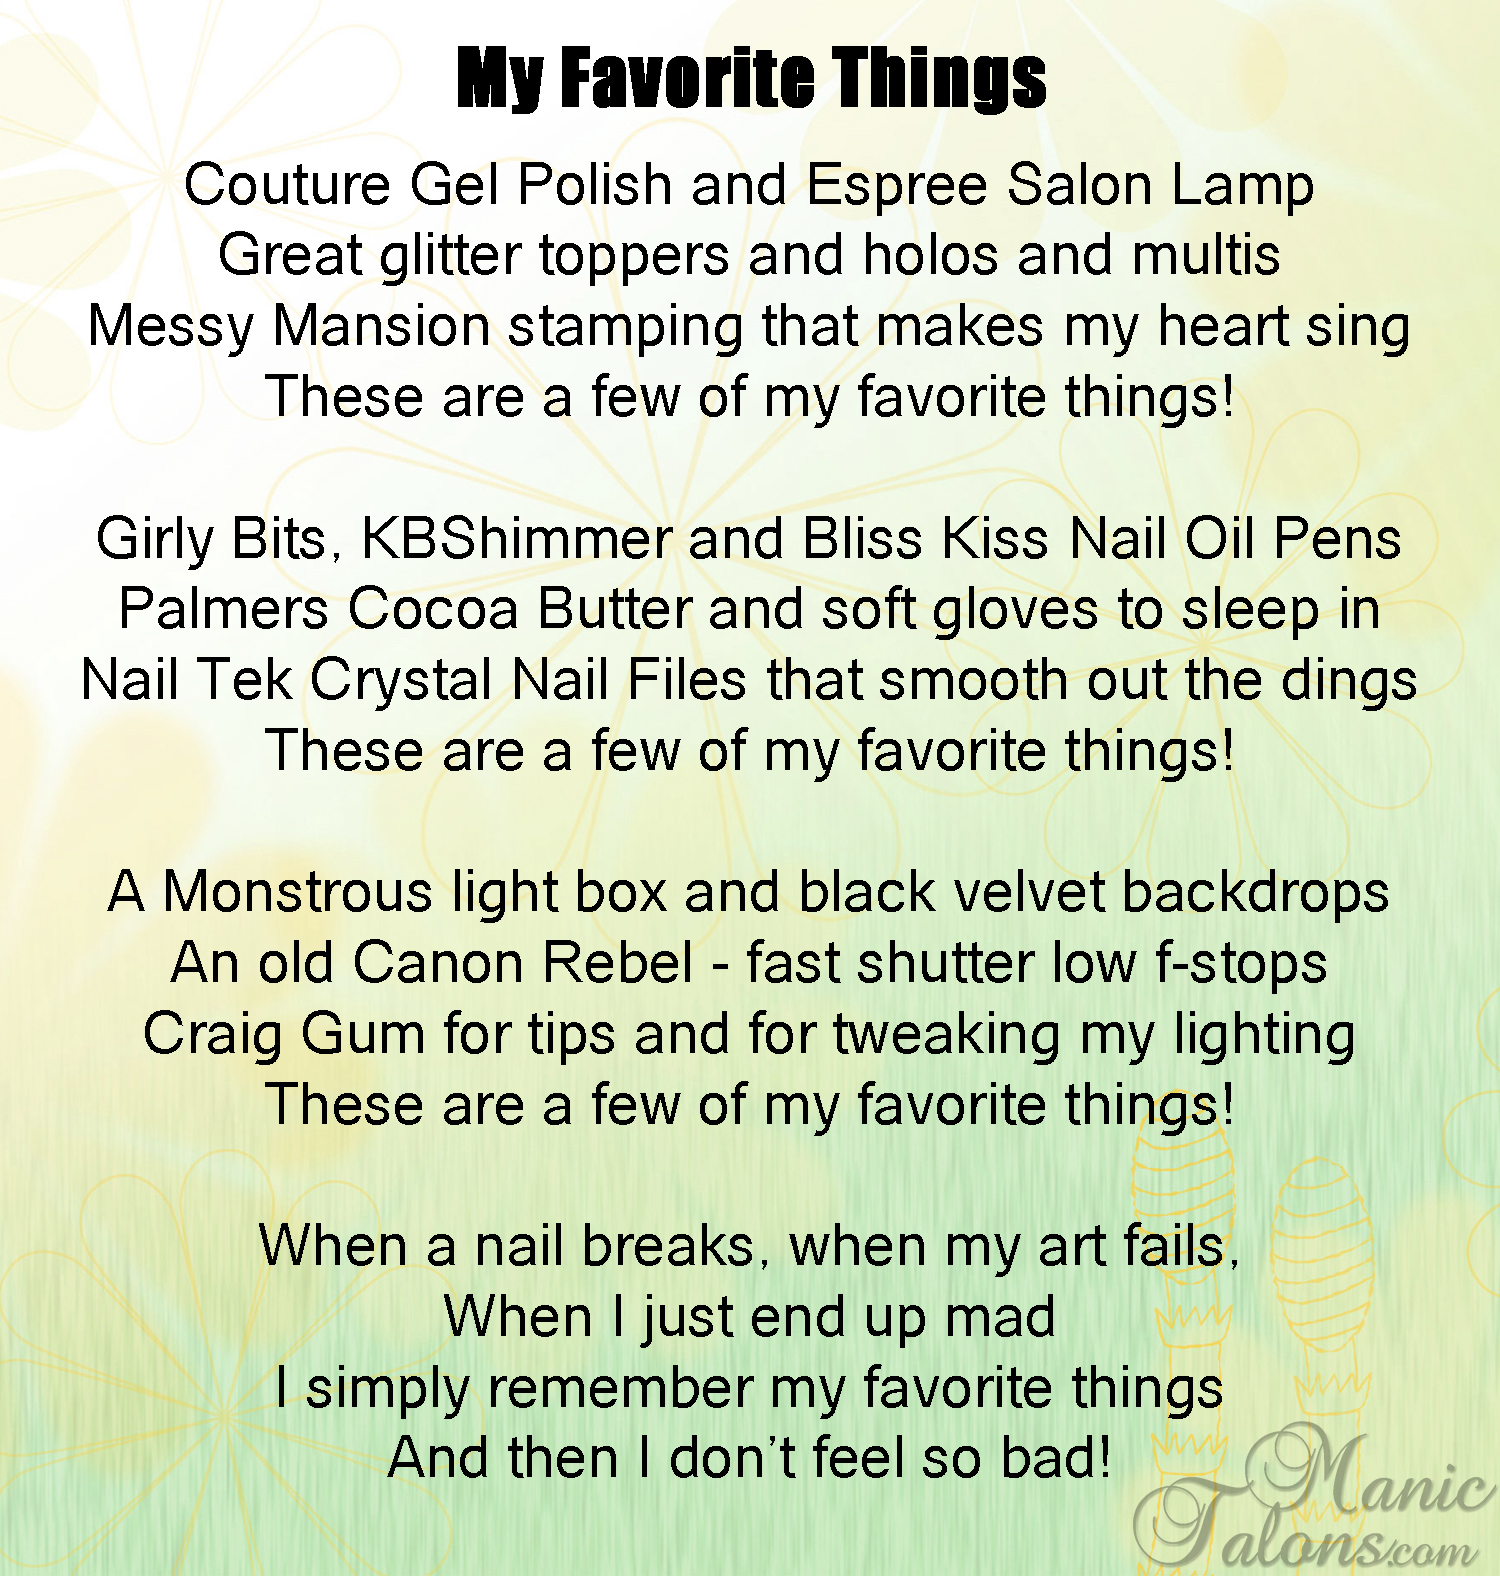 My Favorite Things by Manic Talons